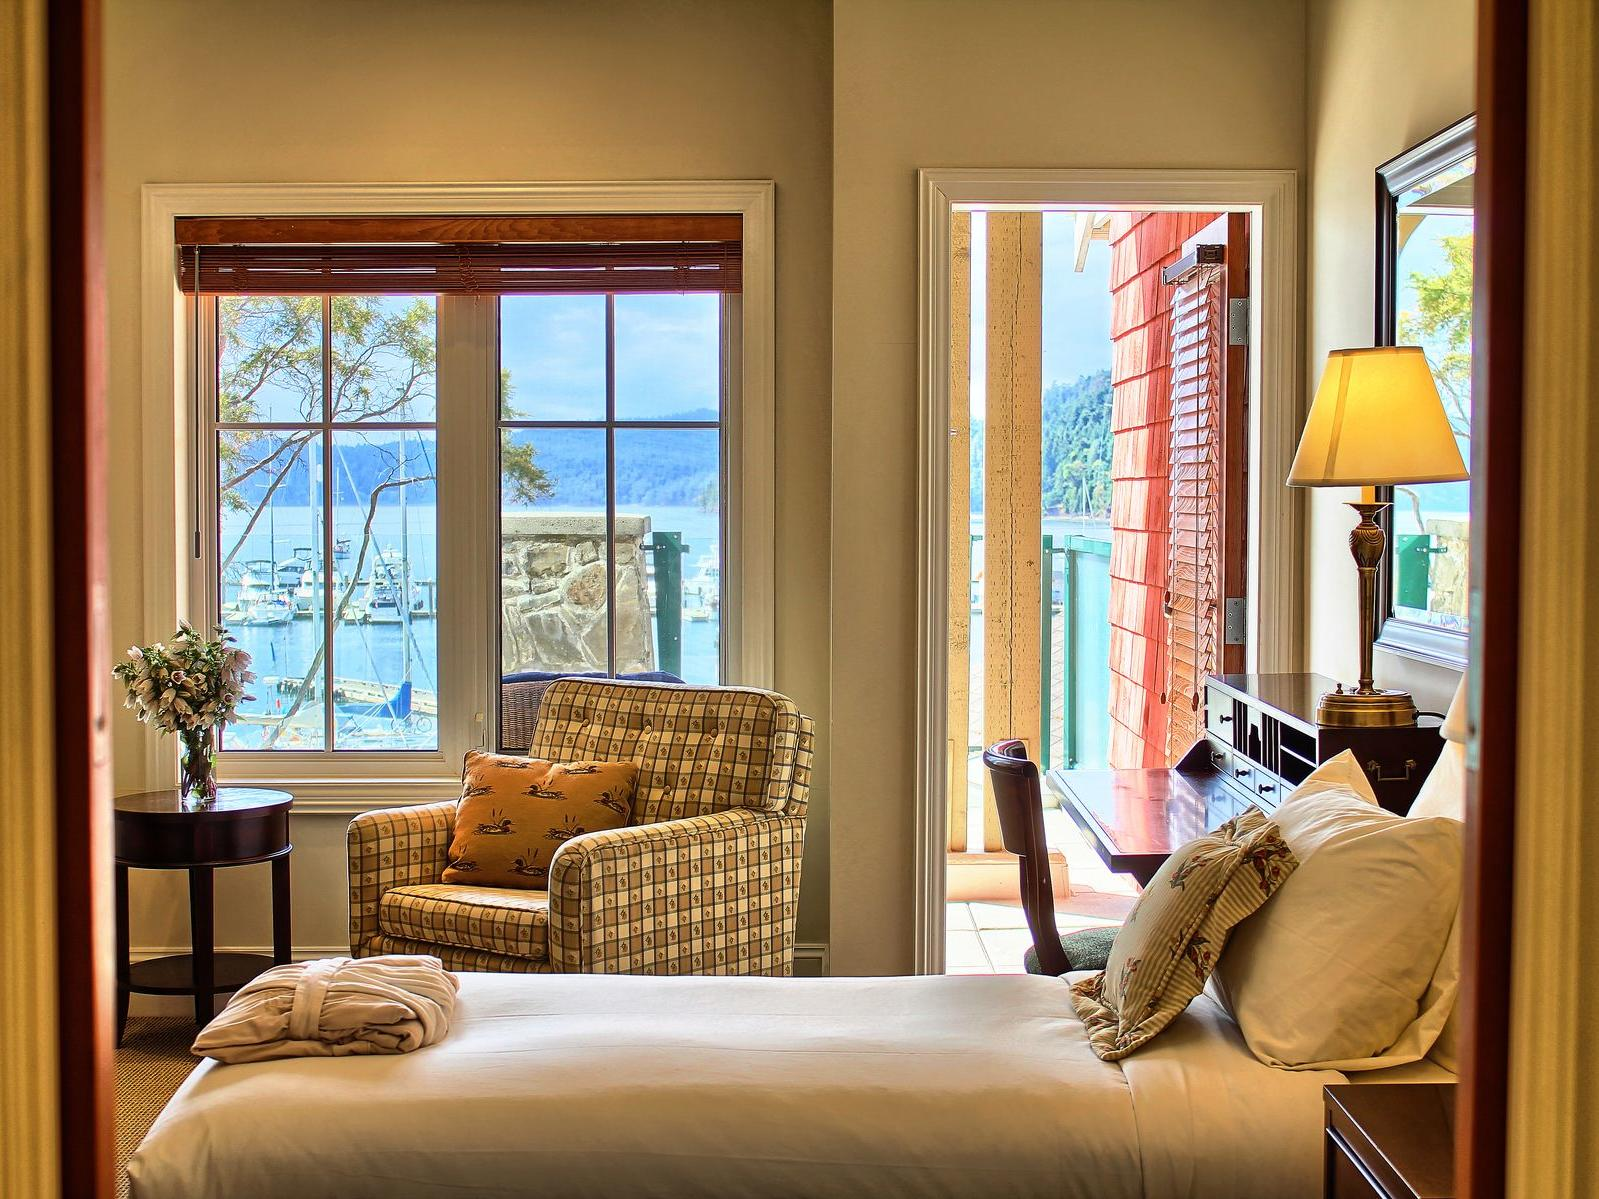 bedroom with door that leads to balcony overlooking ocean